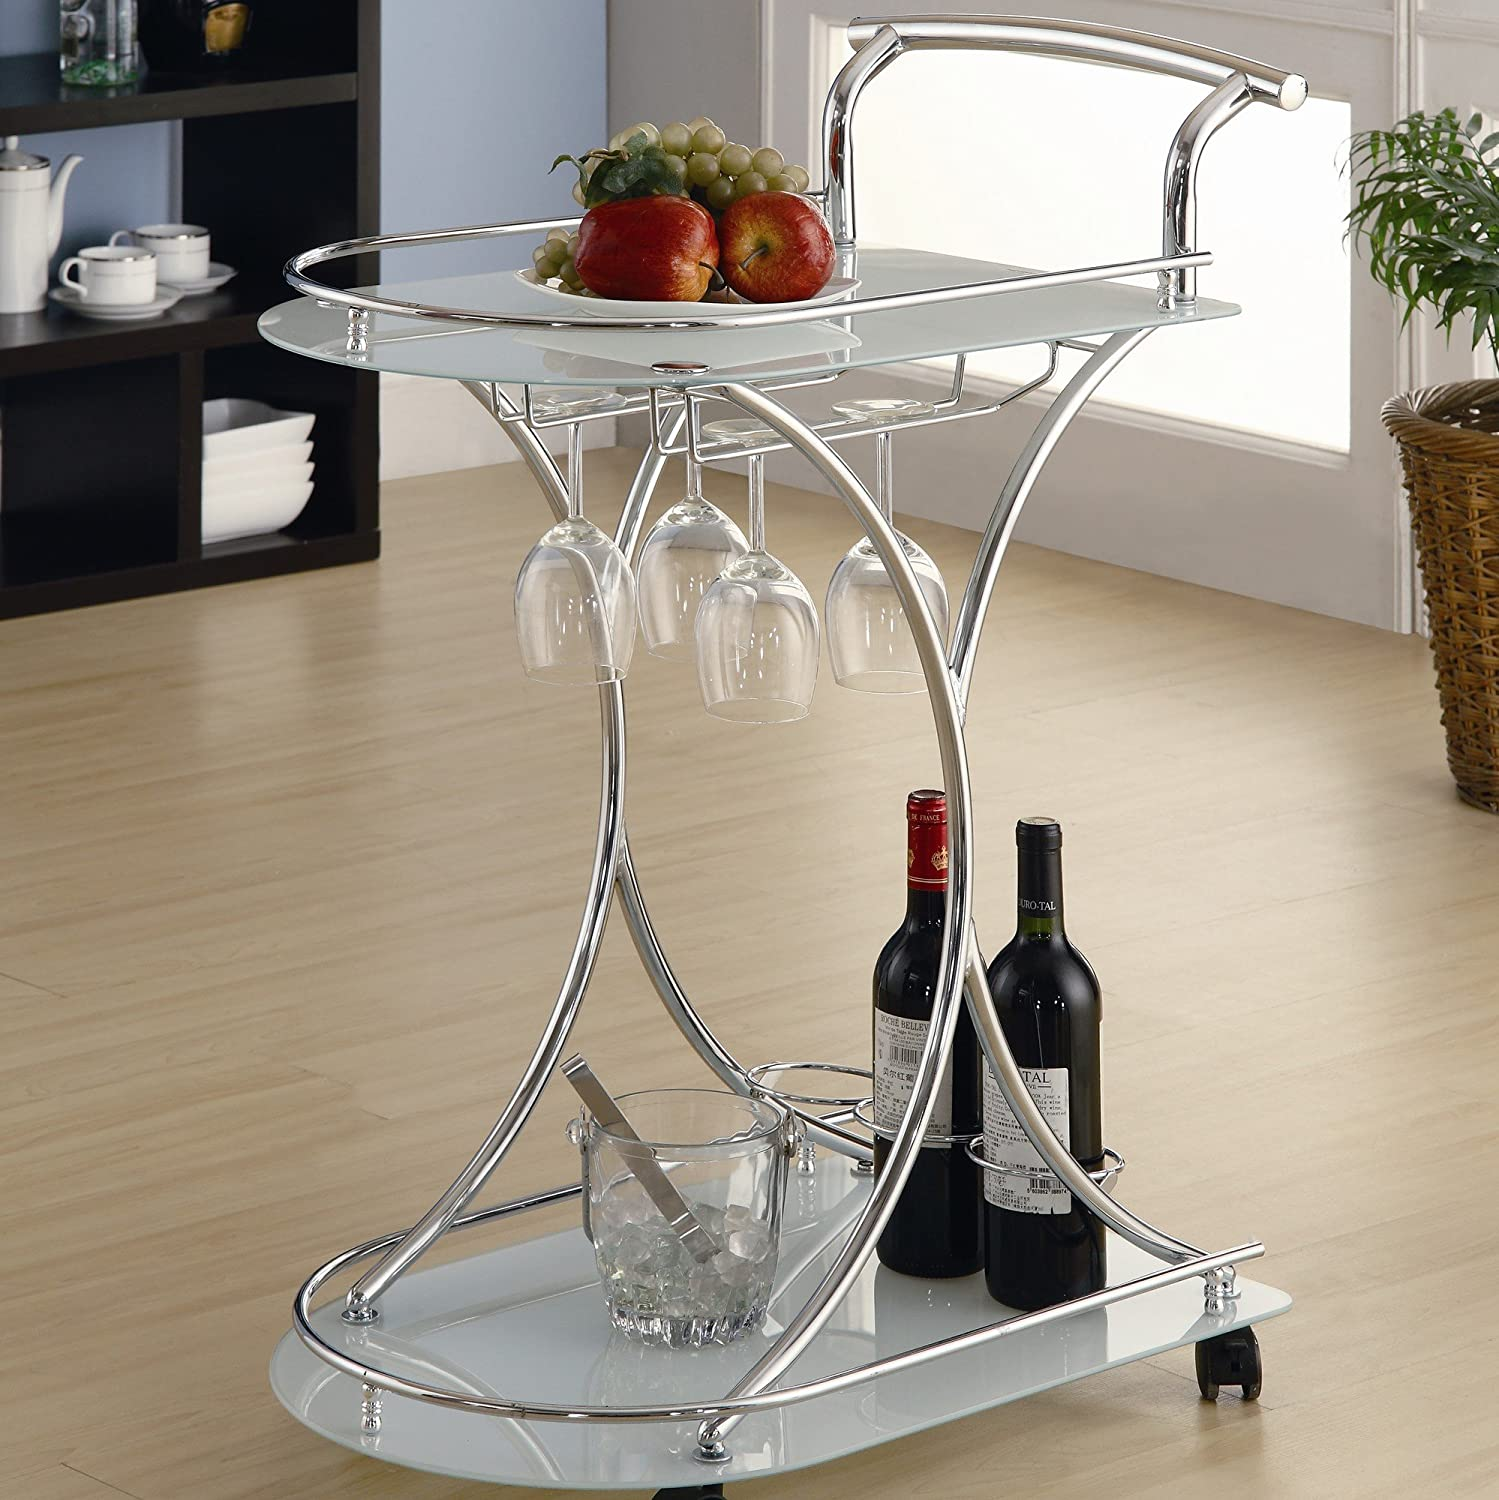 Superbe Amazon.com: Wildon Home Whisper Serving Cart Trolley Tea Bar Contemporary  Style Two Frosted Glass Shelves Drink Liquor Rolling Rack Beverage Wine  Tray: ...